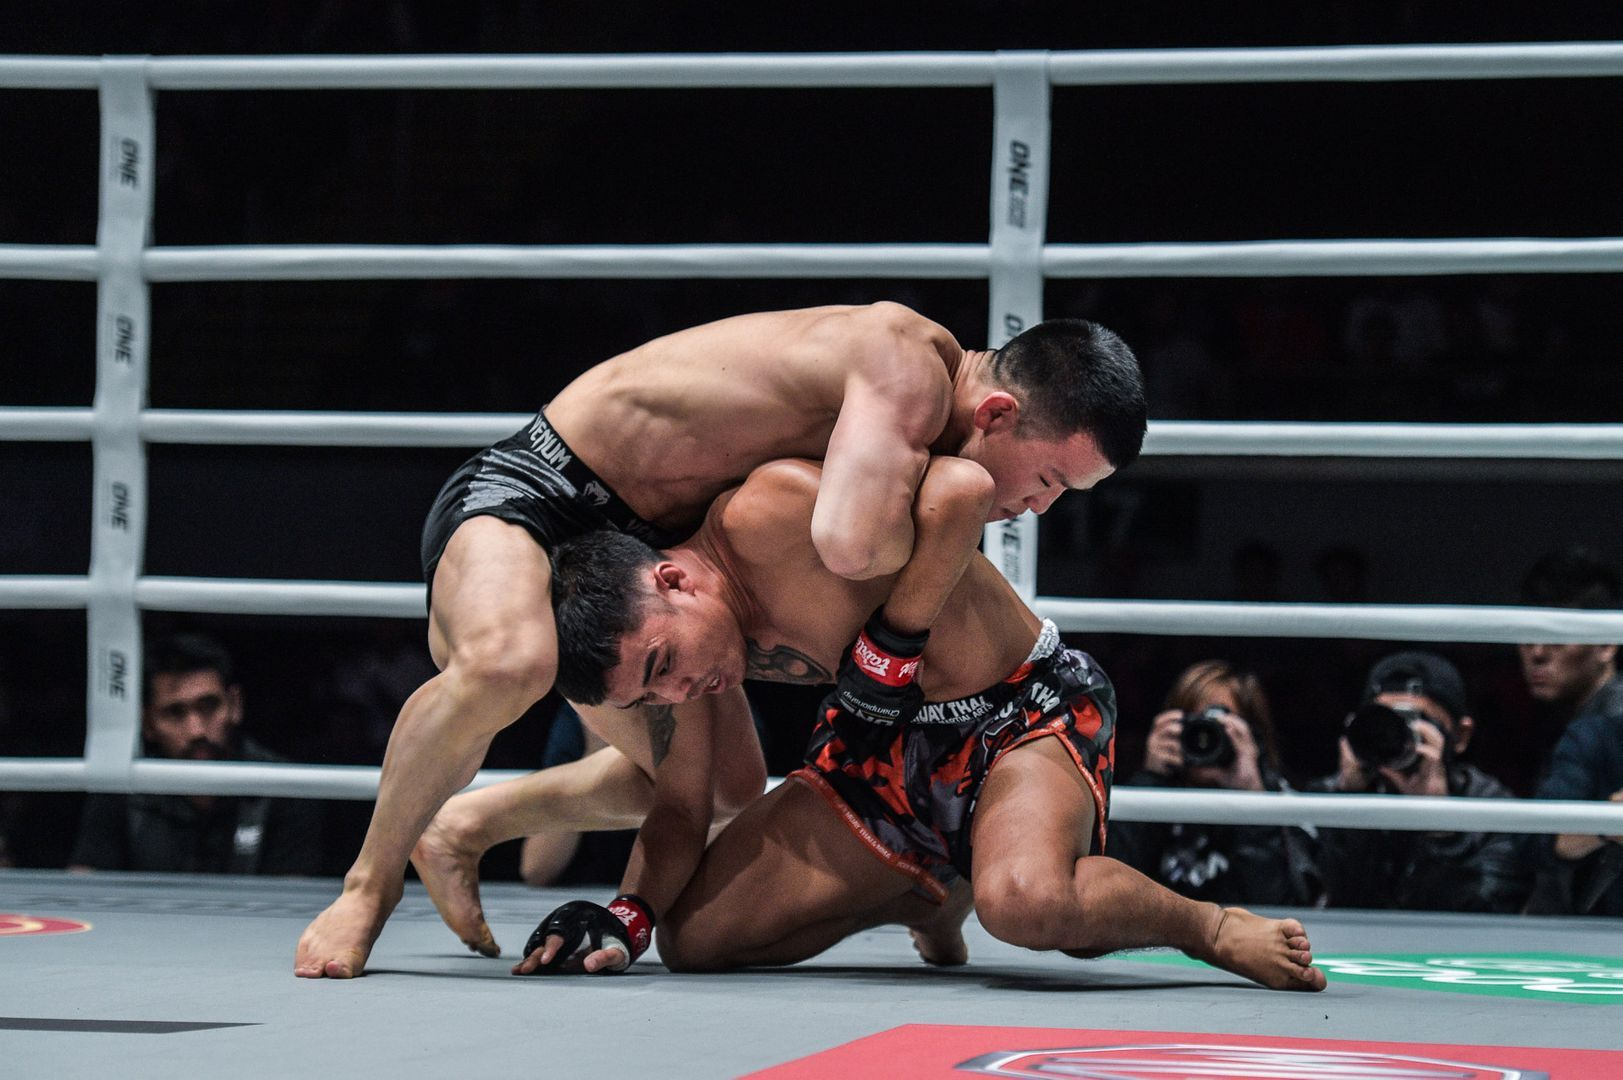 Miao Li Tai defeats Pongsiri Mitsatit via unanimous decision at ONE: DAWN OF HEROES